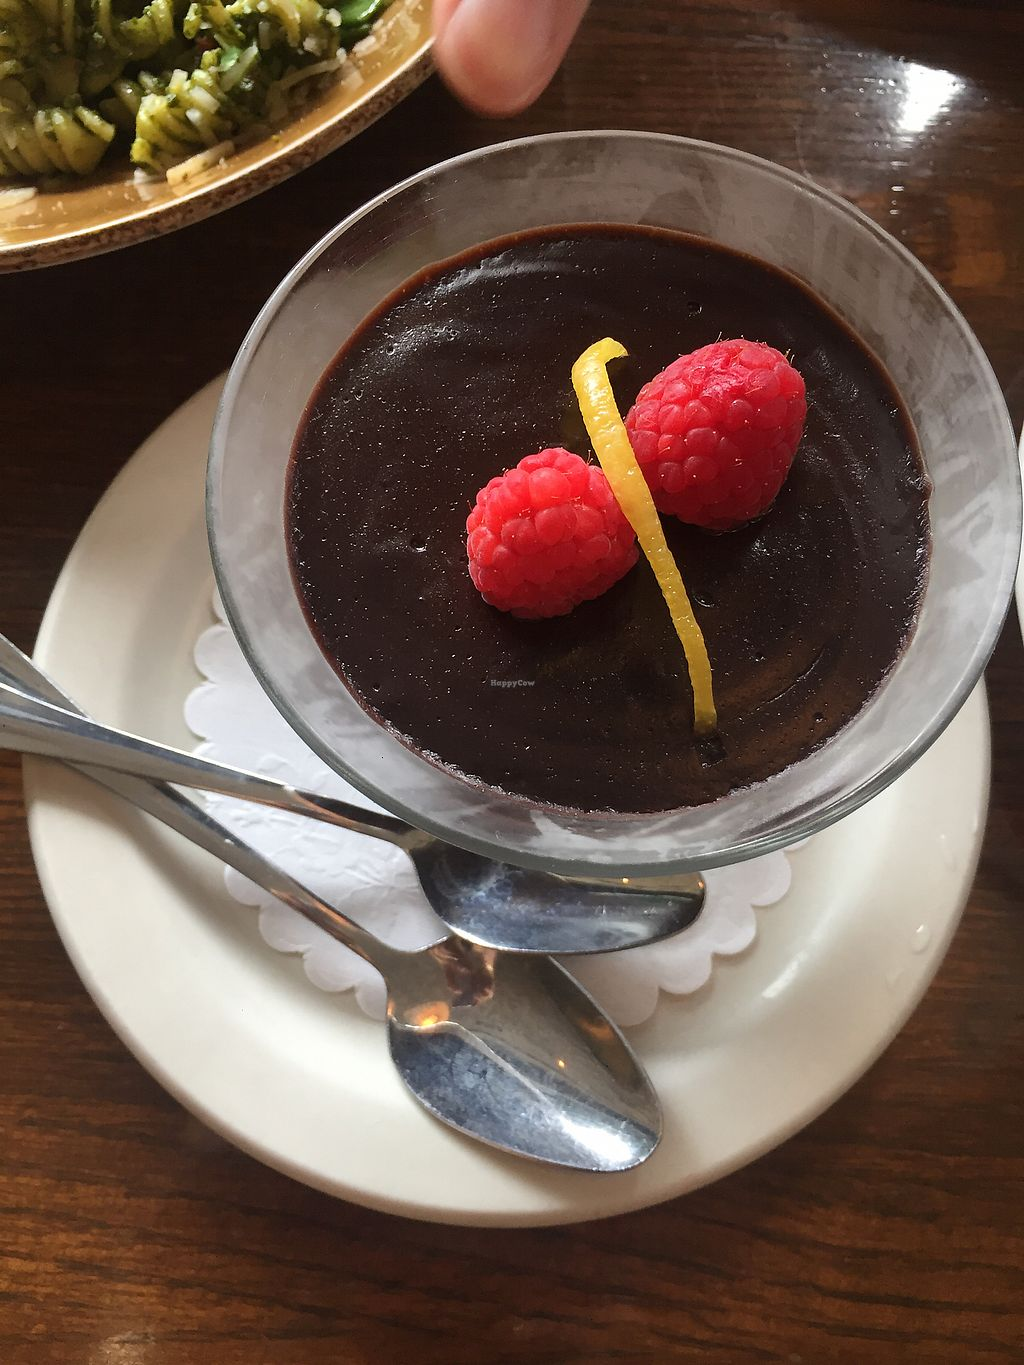 """Photo of Blind Faith Cafe  by <a href=""""/members/profile/Vitaliya"""">Vitaliya</a> <br/>Belgian Chocolate Pudding.... sooo good!!! <br/> July 3, 2017  - <a href='/contact/abuse/image/1959/276201'>Report</a>"""